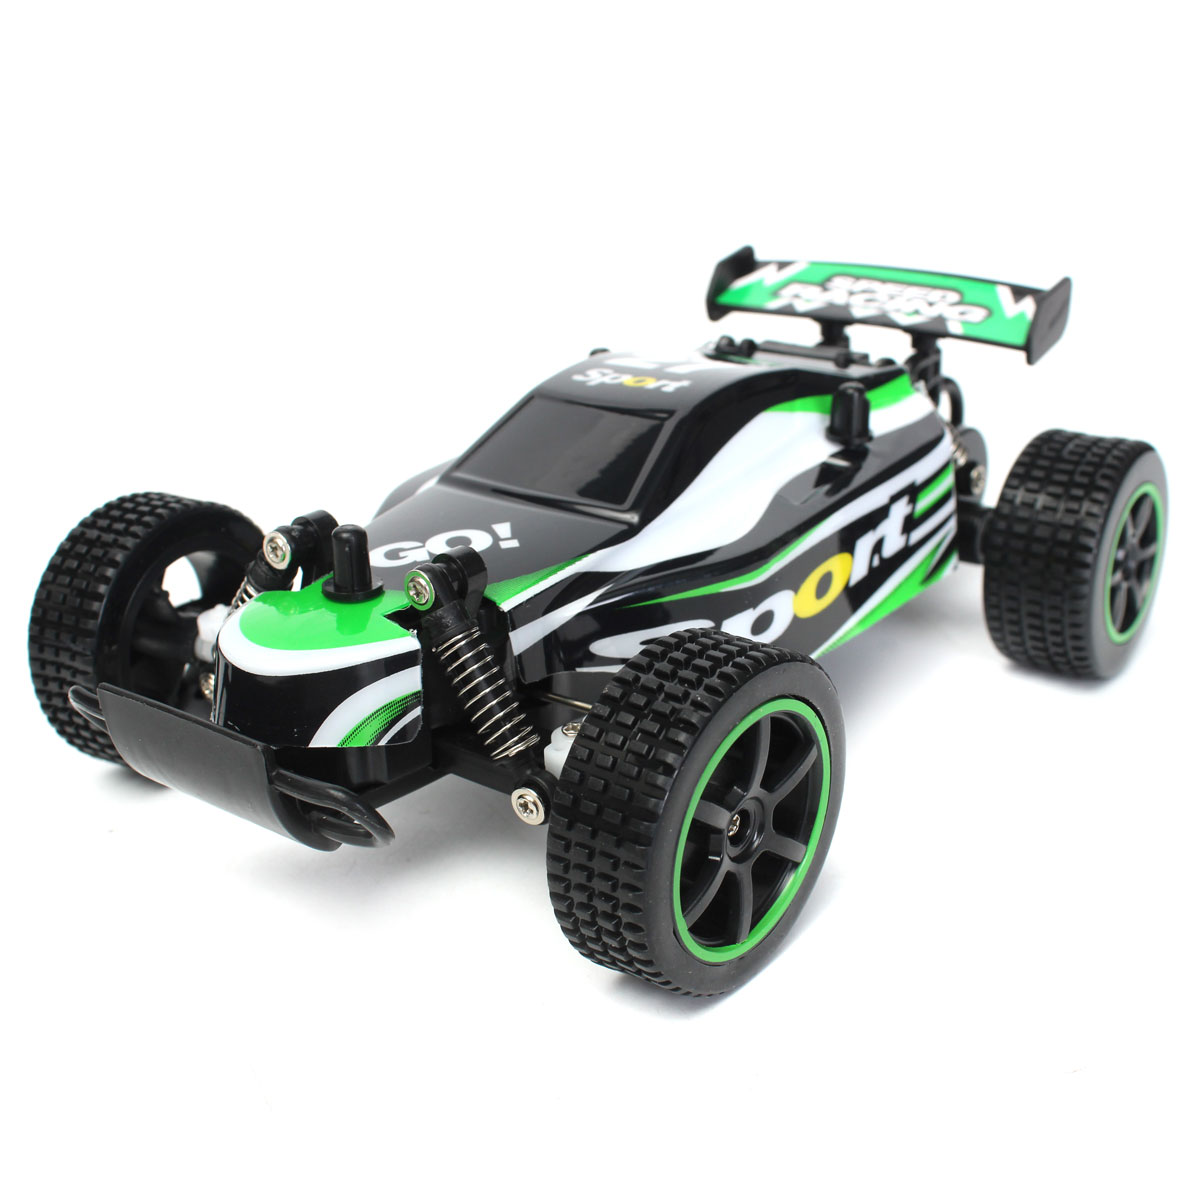 1/20 2WD 2.4G High Speed RC Racing Buggy Car Off Road RTR